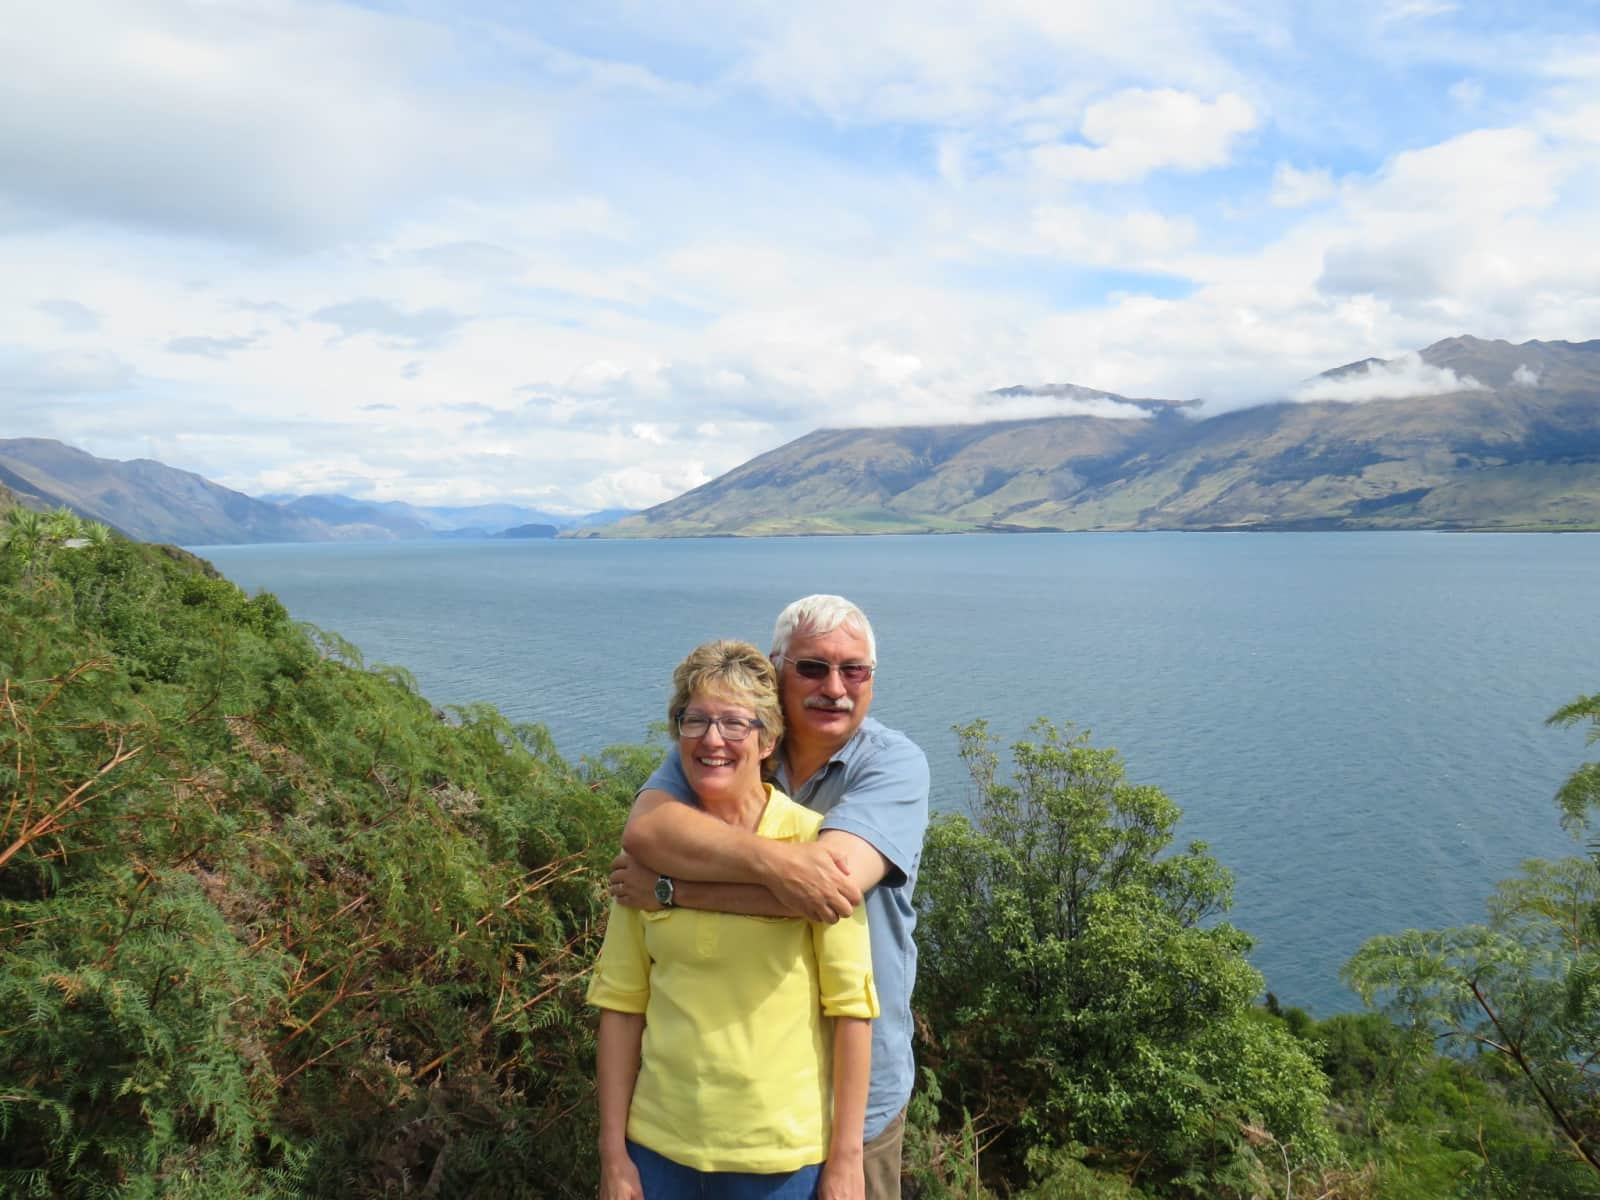 Steve and sally from Dulverton, United Kingdom